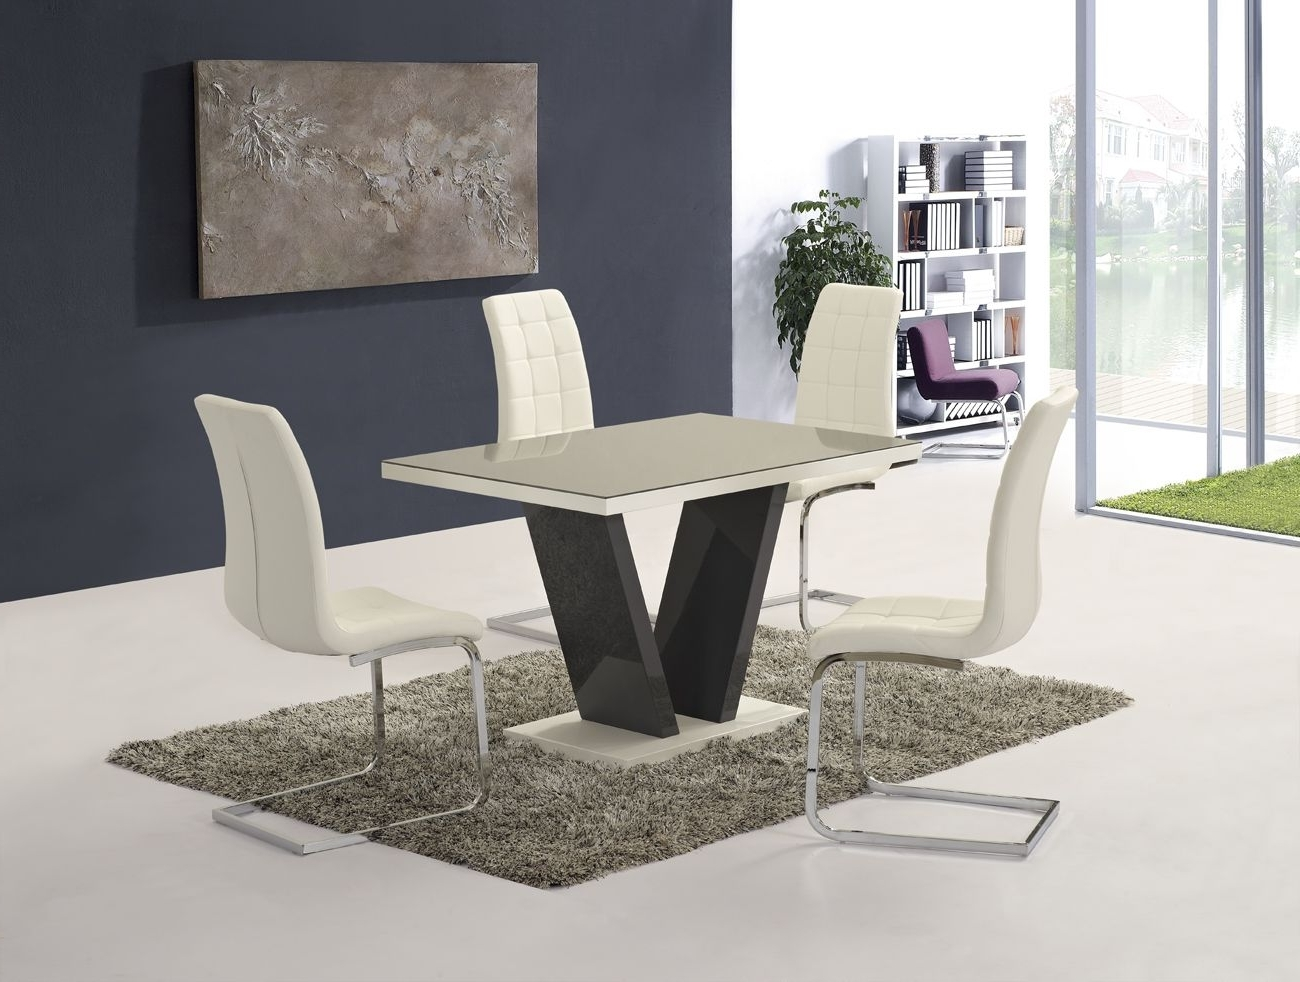 Recent Ga Vico High Gloss Grey Glass Top Designer 120 Cm Dining Set & 4 In Cream High Gloss Dining Tables (View 21 of 25)